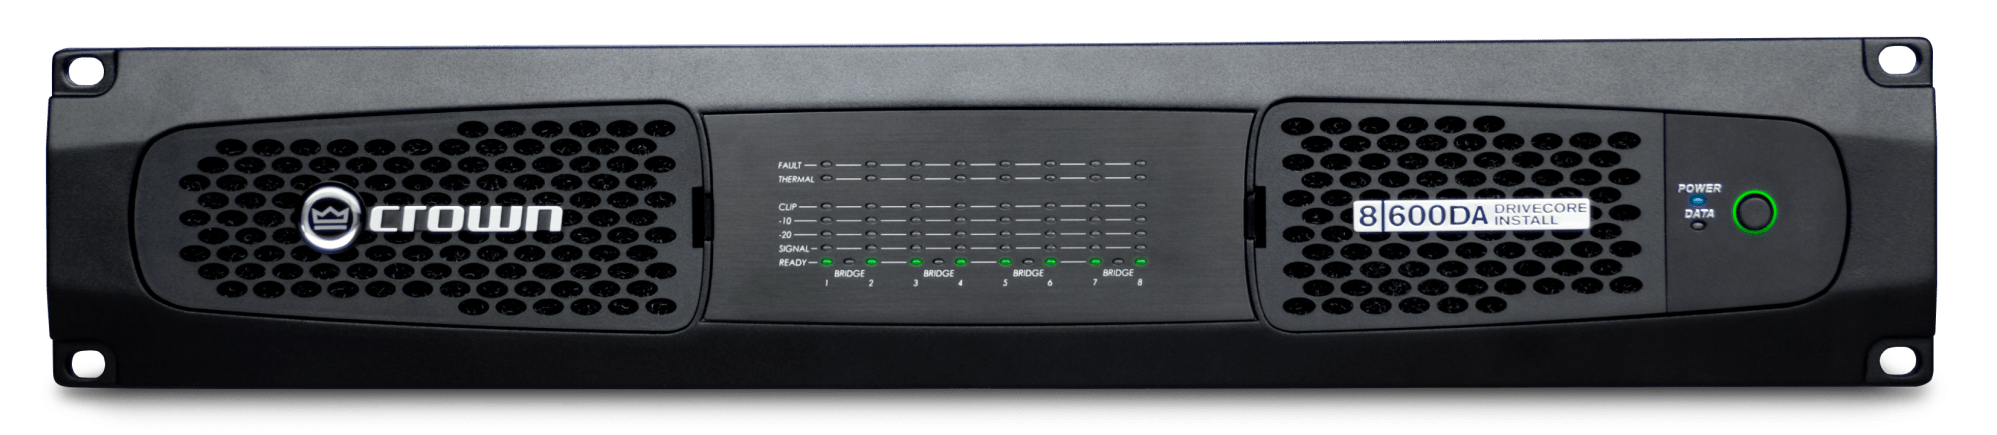 hight resolution of eight channel 600w 4 power amplifier with dante aes67 networked audio and 70v 100v